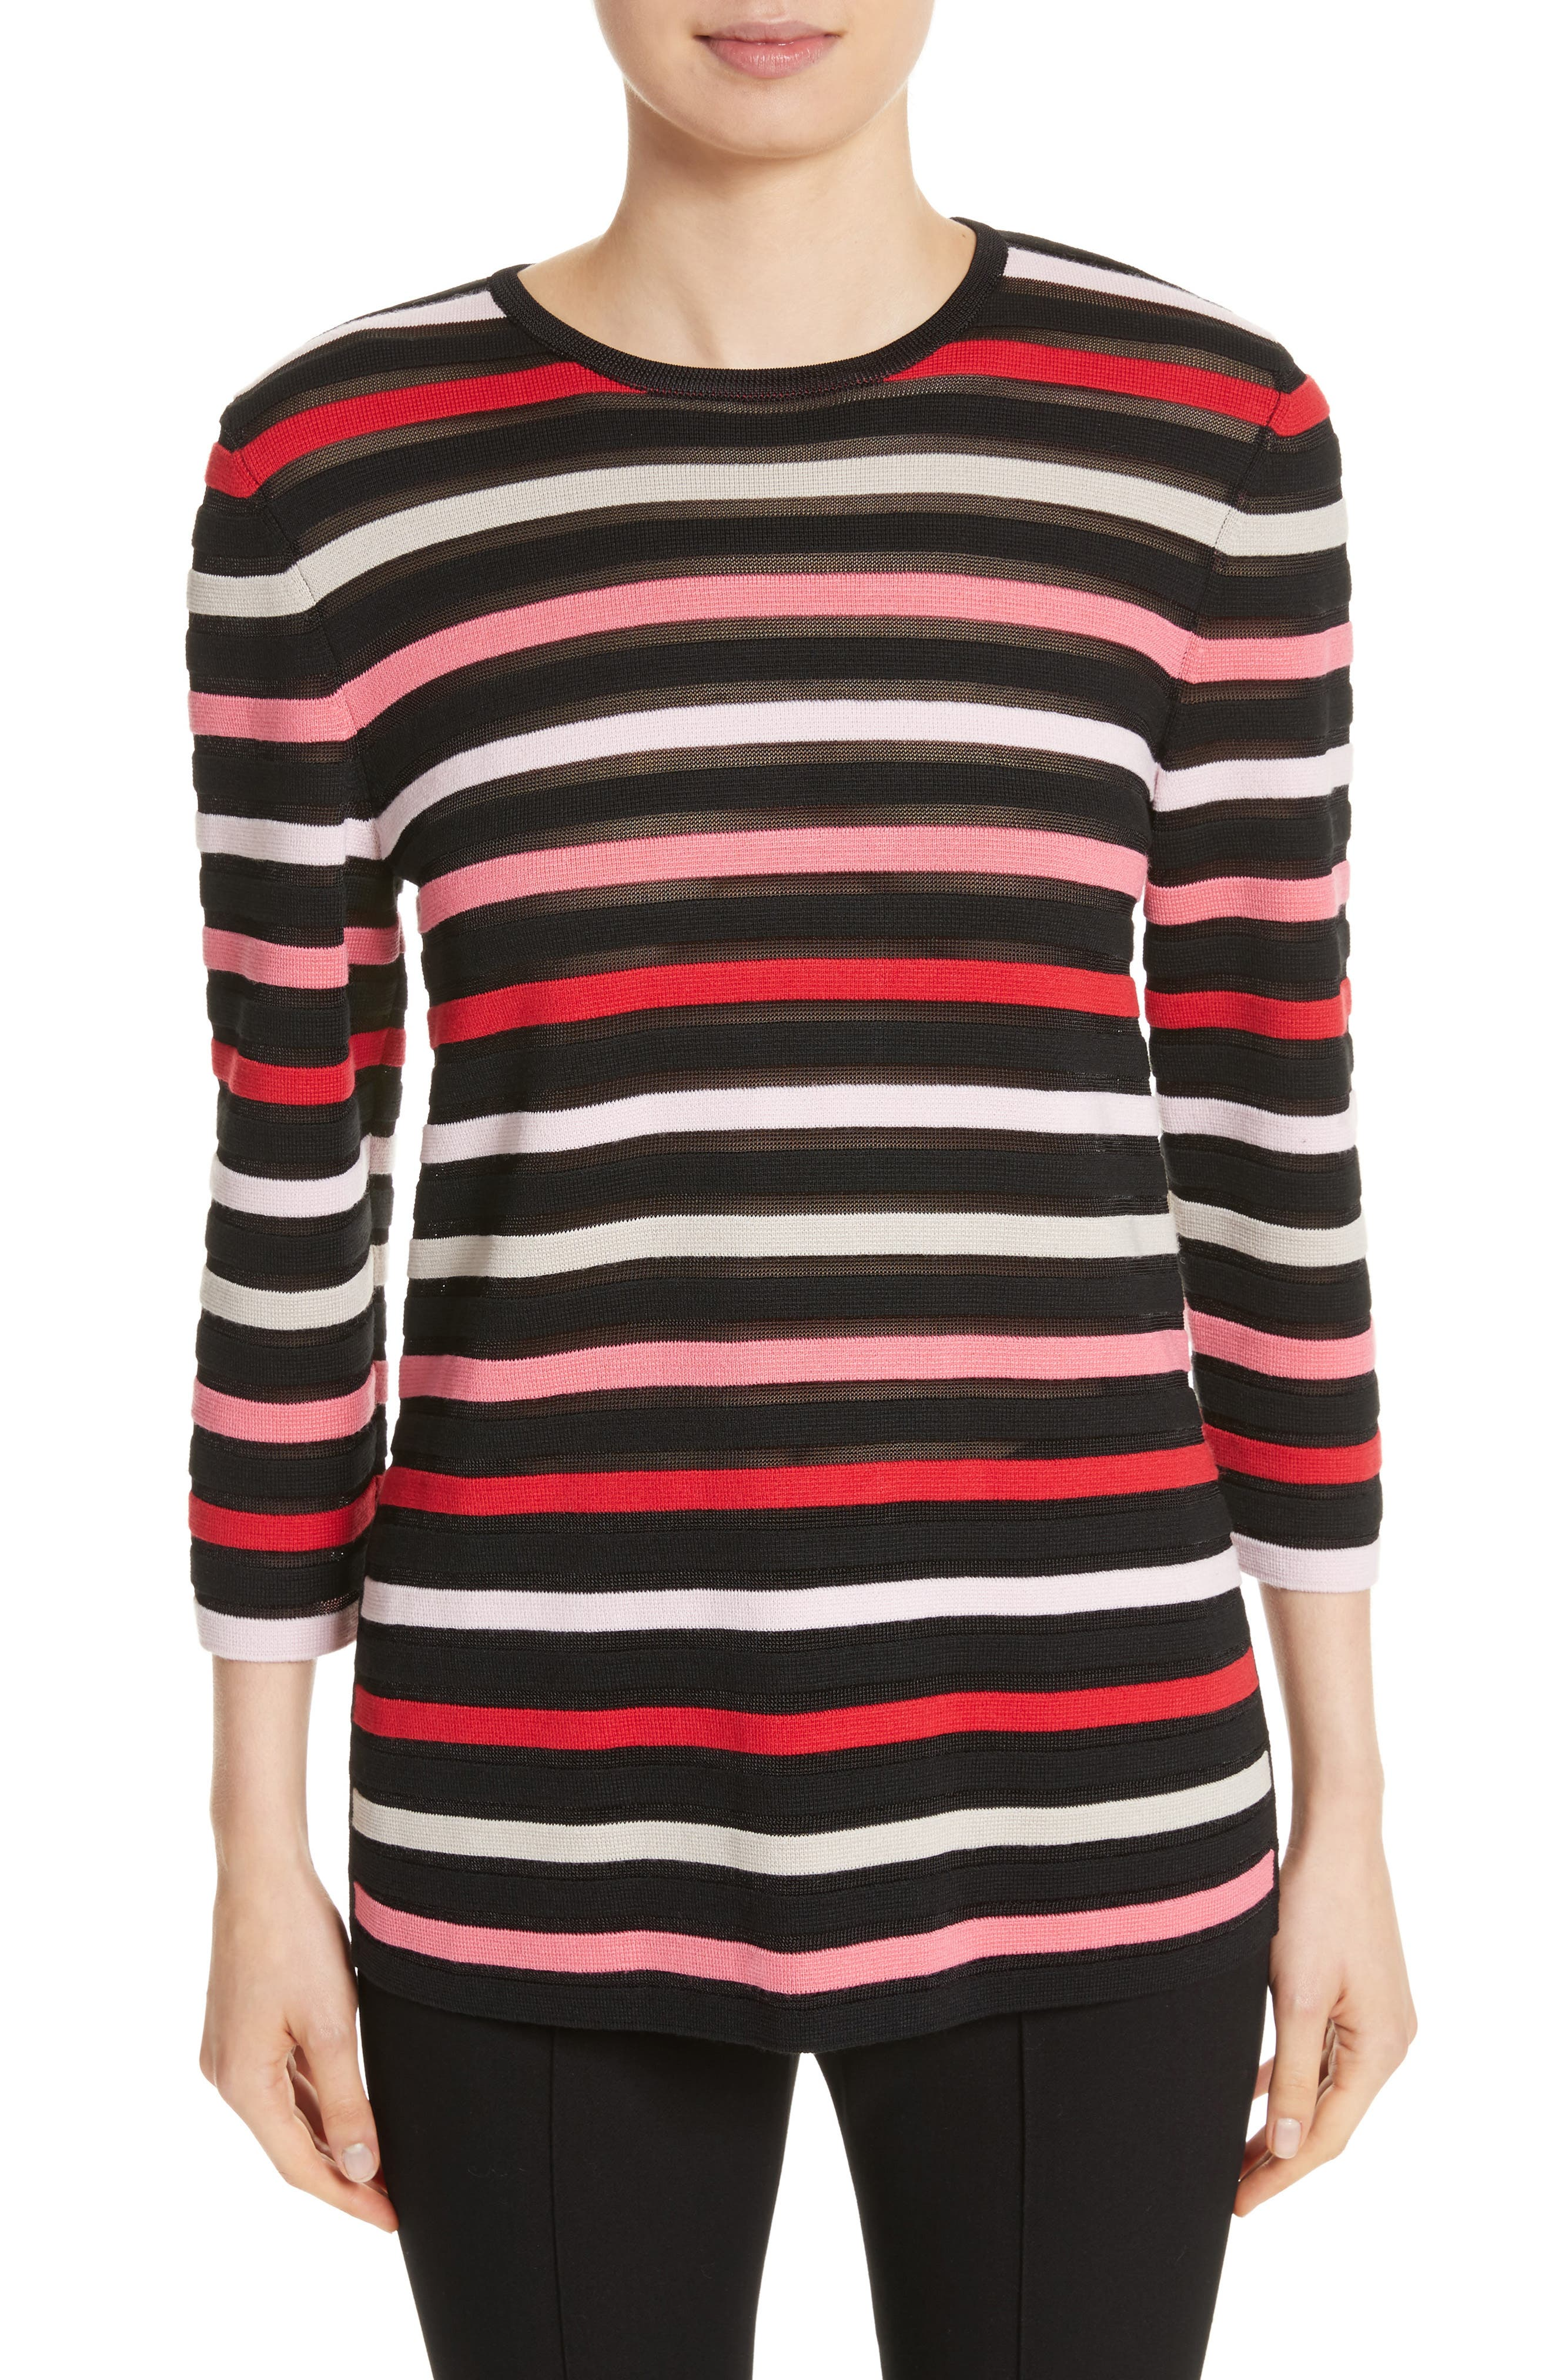 Alternate Image 1 Selected - St. John Collection Ombré Stripe Sweater